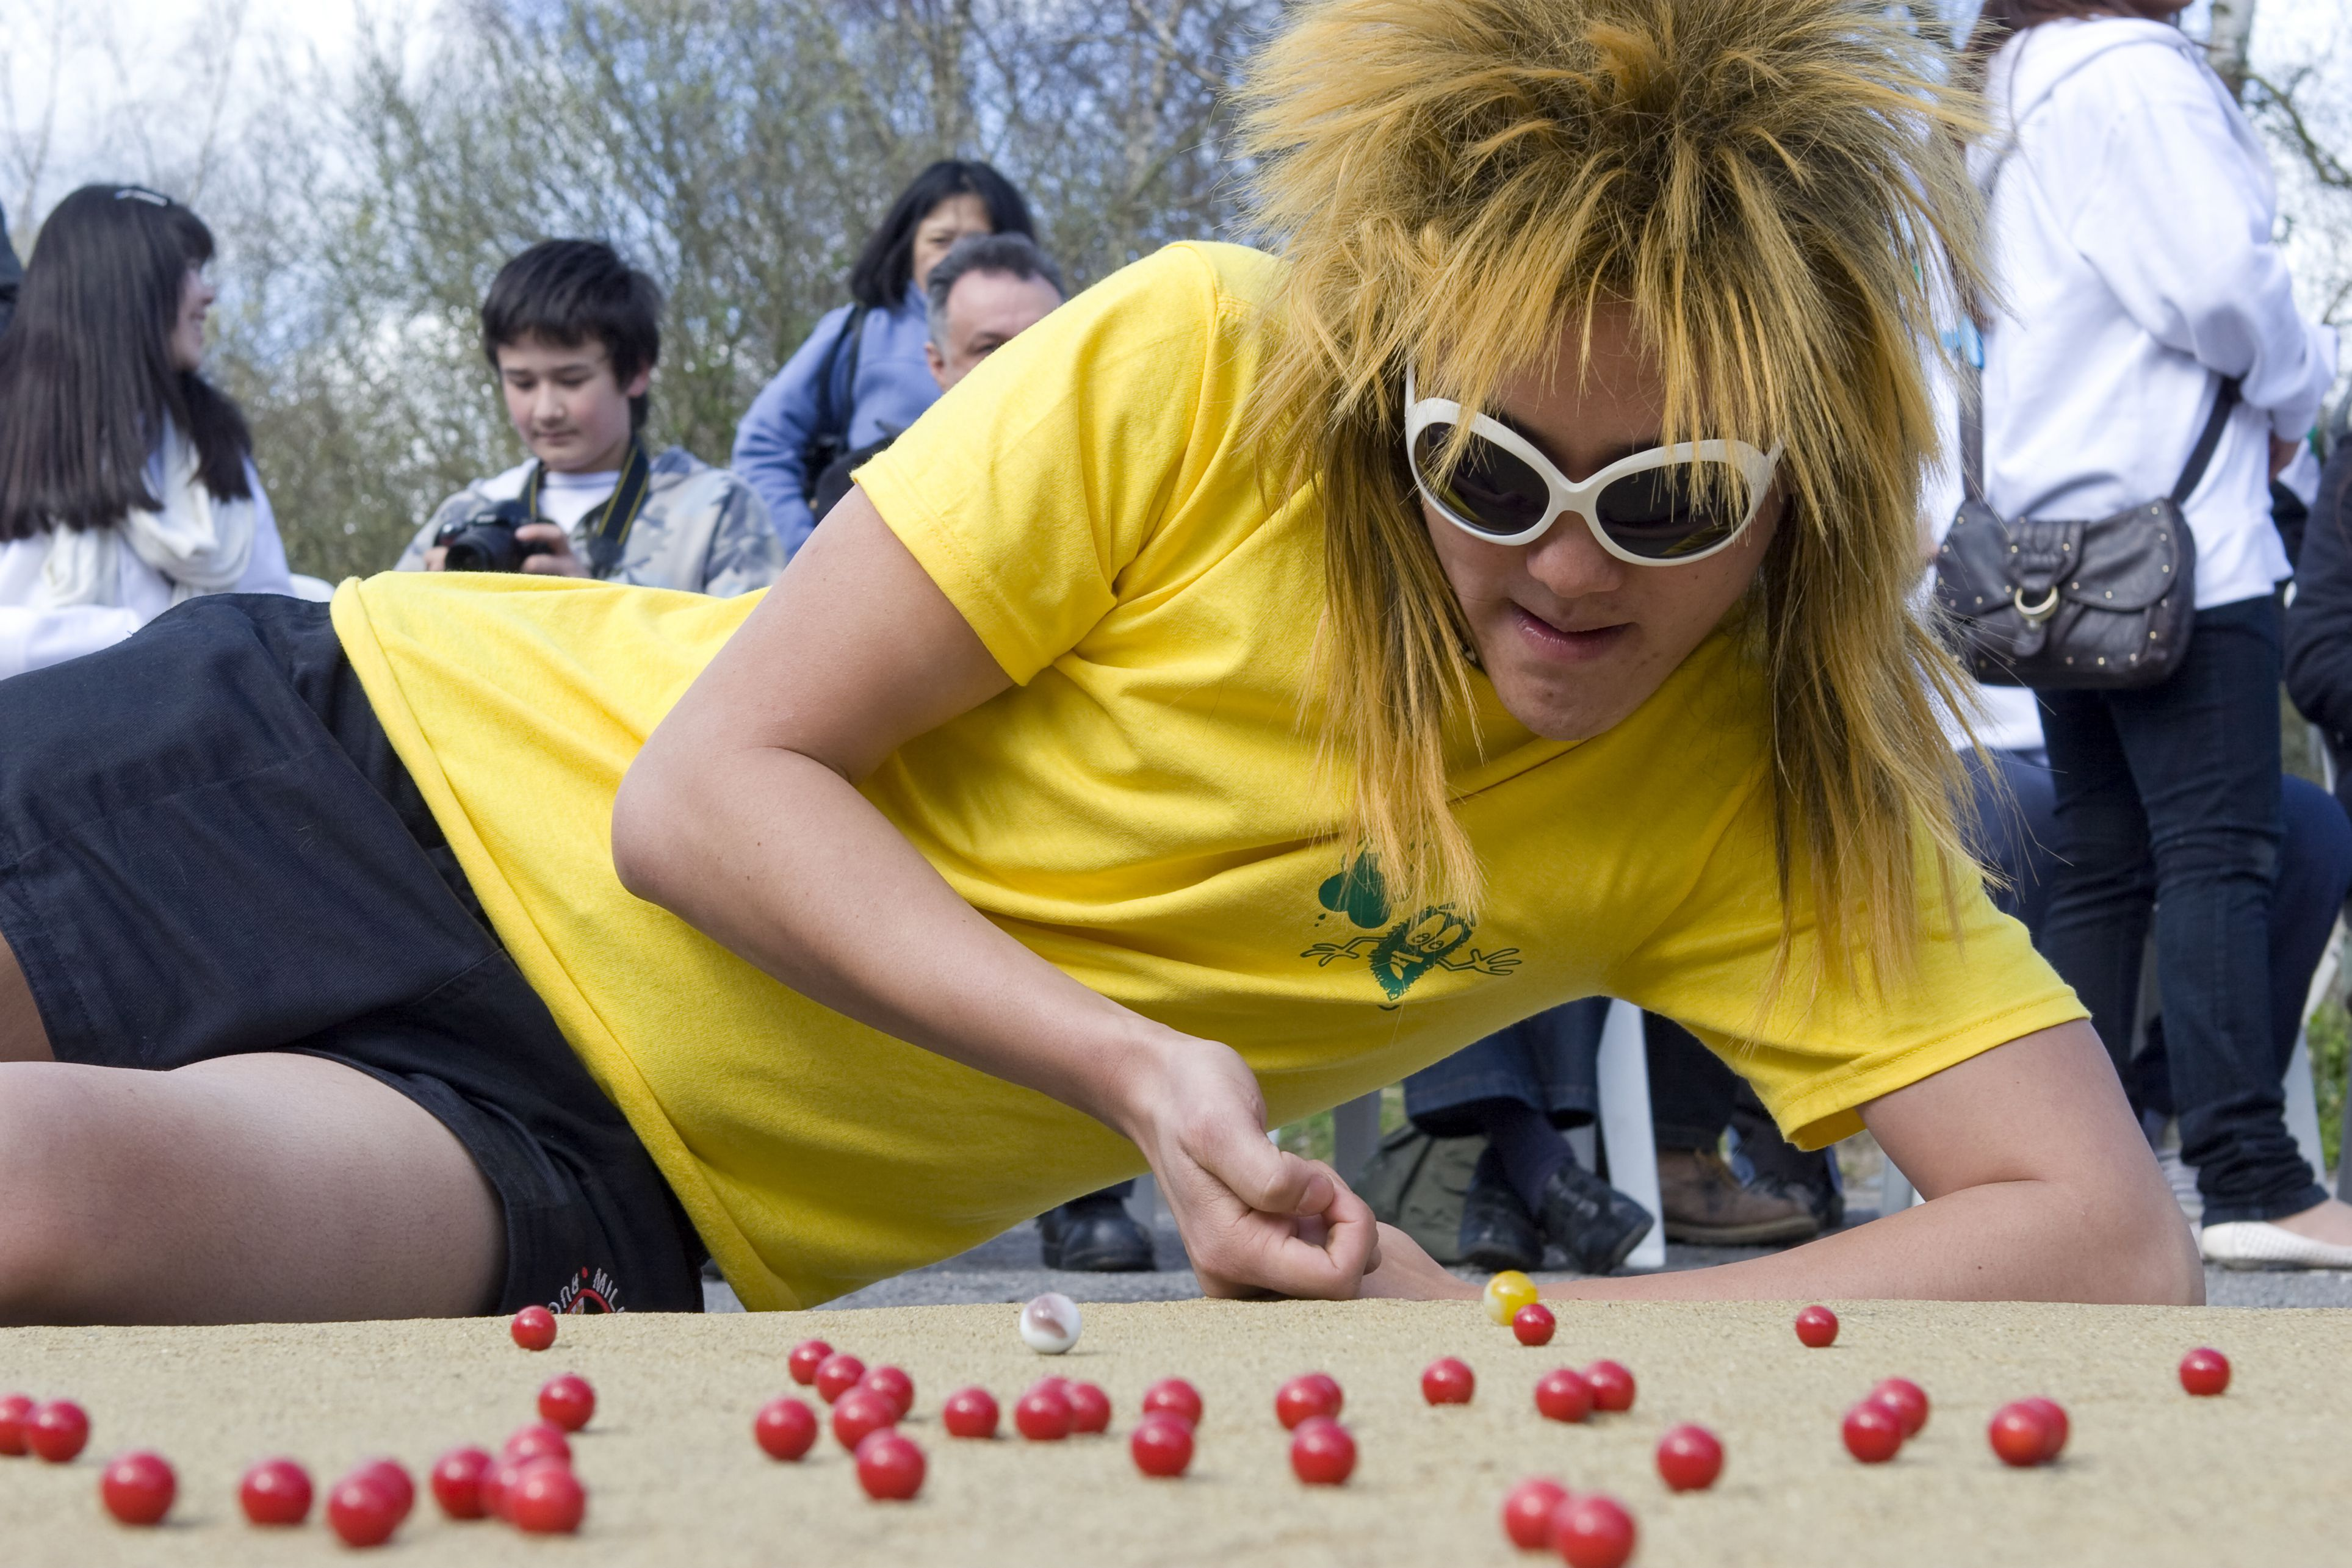 Mibster playing Marbles at the International World Marbles Championship